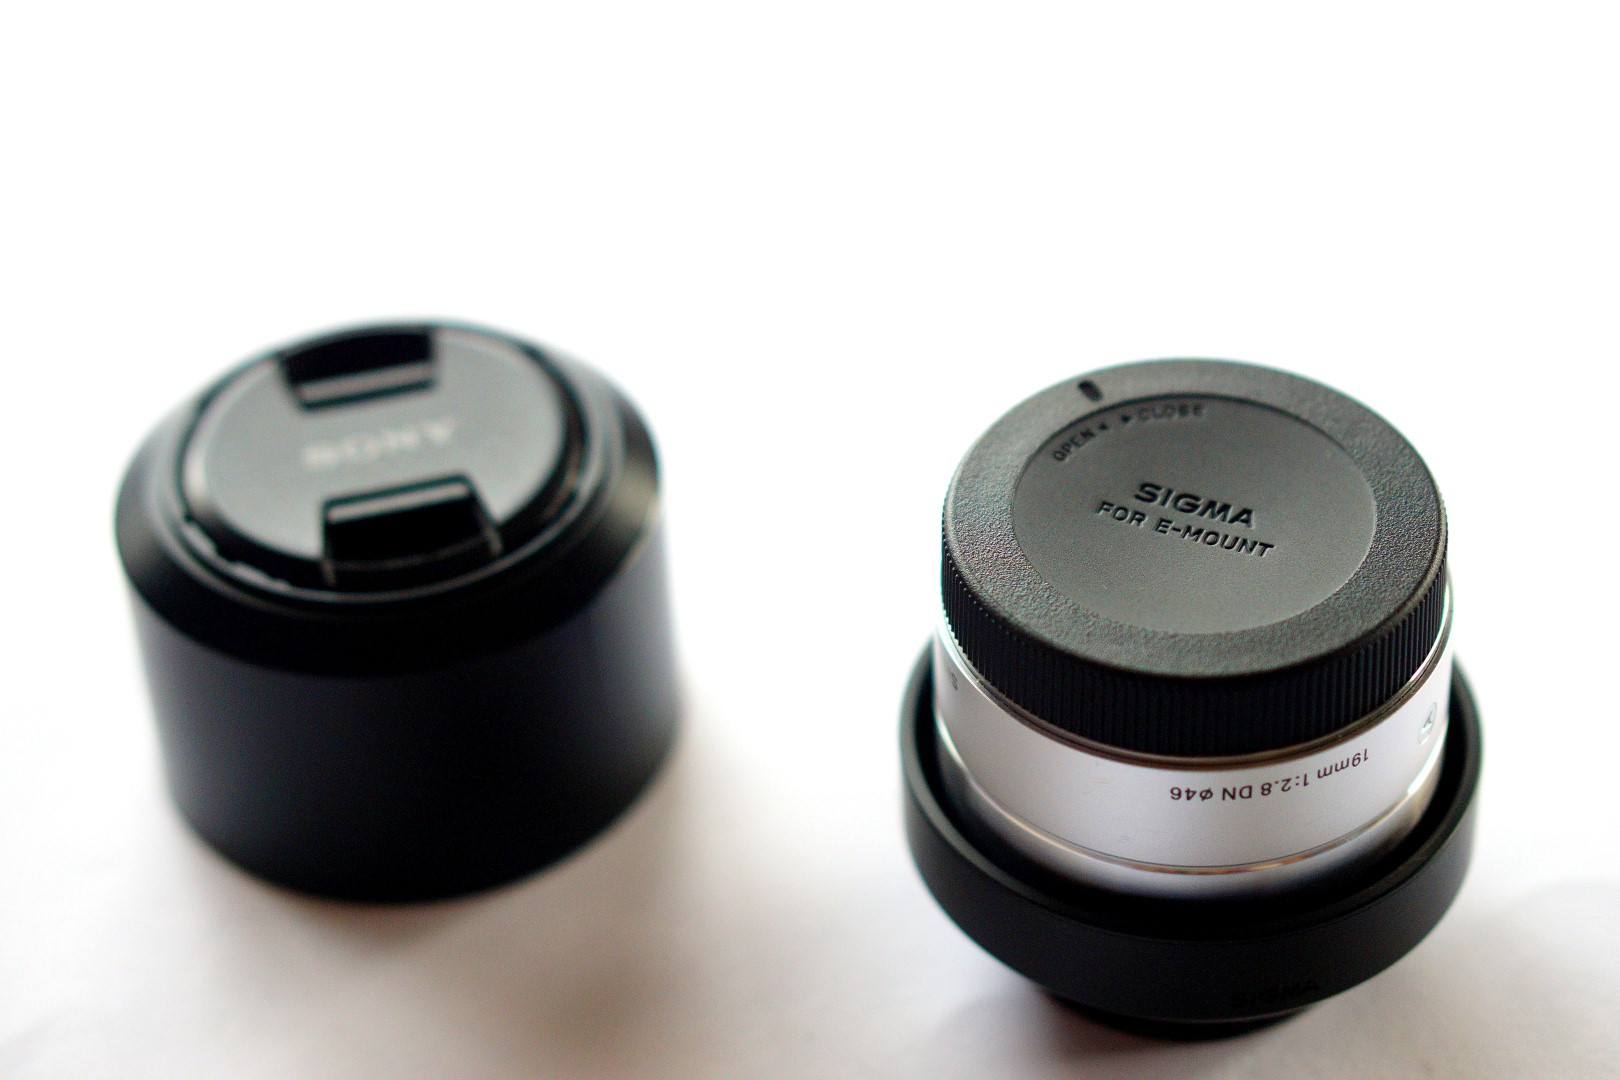 Sigma 19mm lens for sony A6000